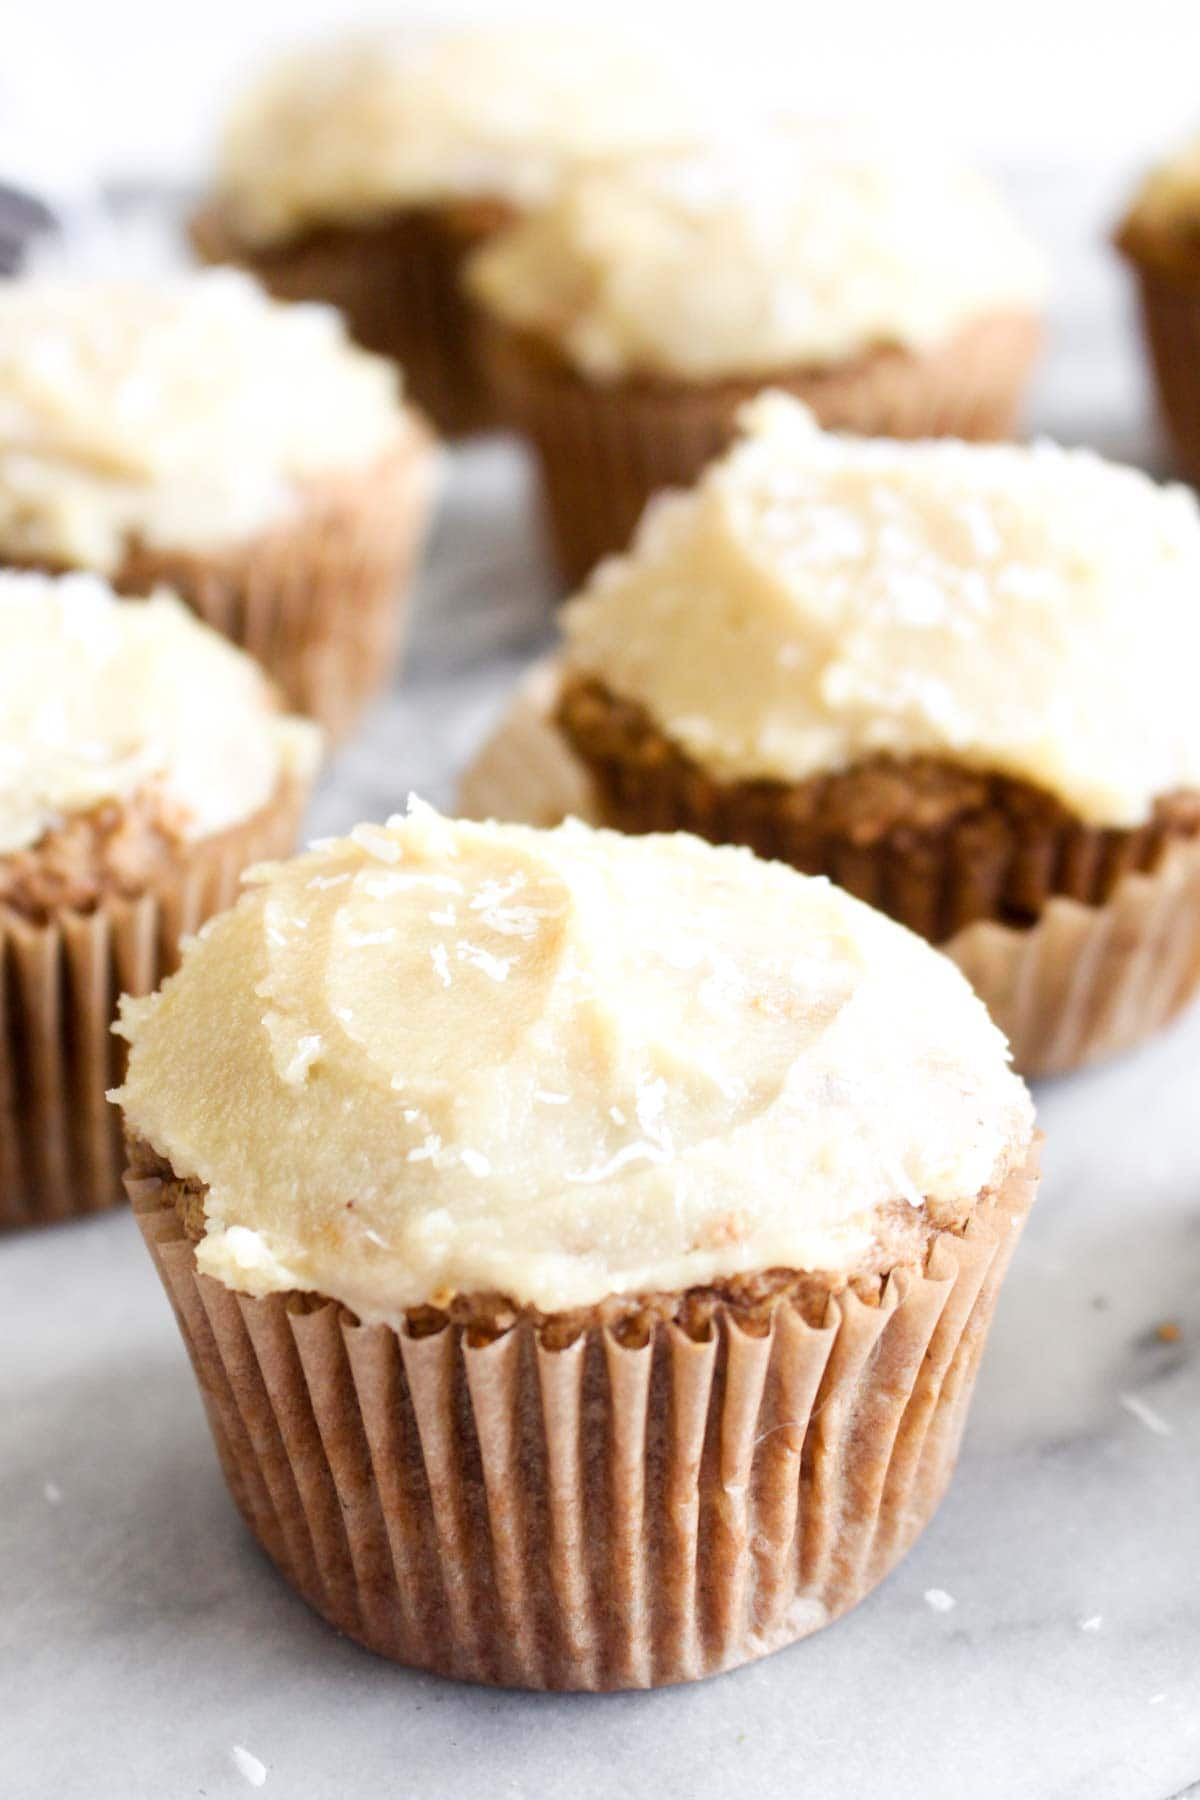 These Gluten Free Carrot Cake Cupcakes are packed with carrot cake flavor, yet are gluten-free and vegan! These treats are the perfect healthy Easter indulgence!